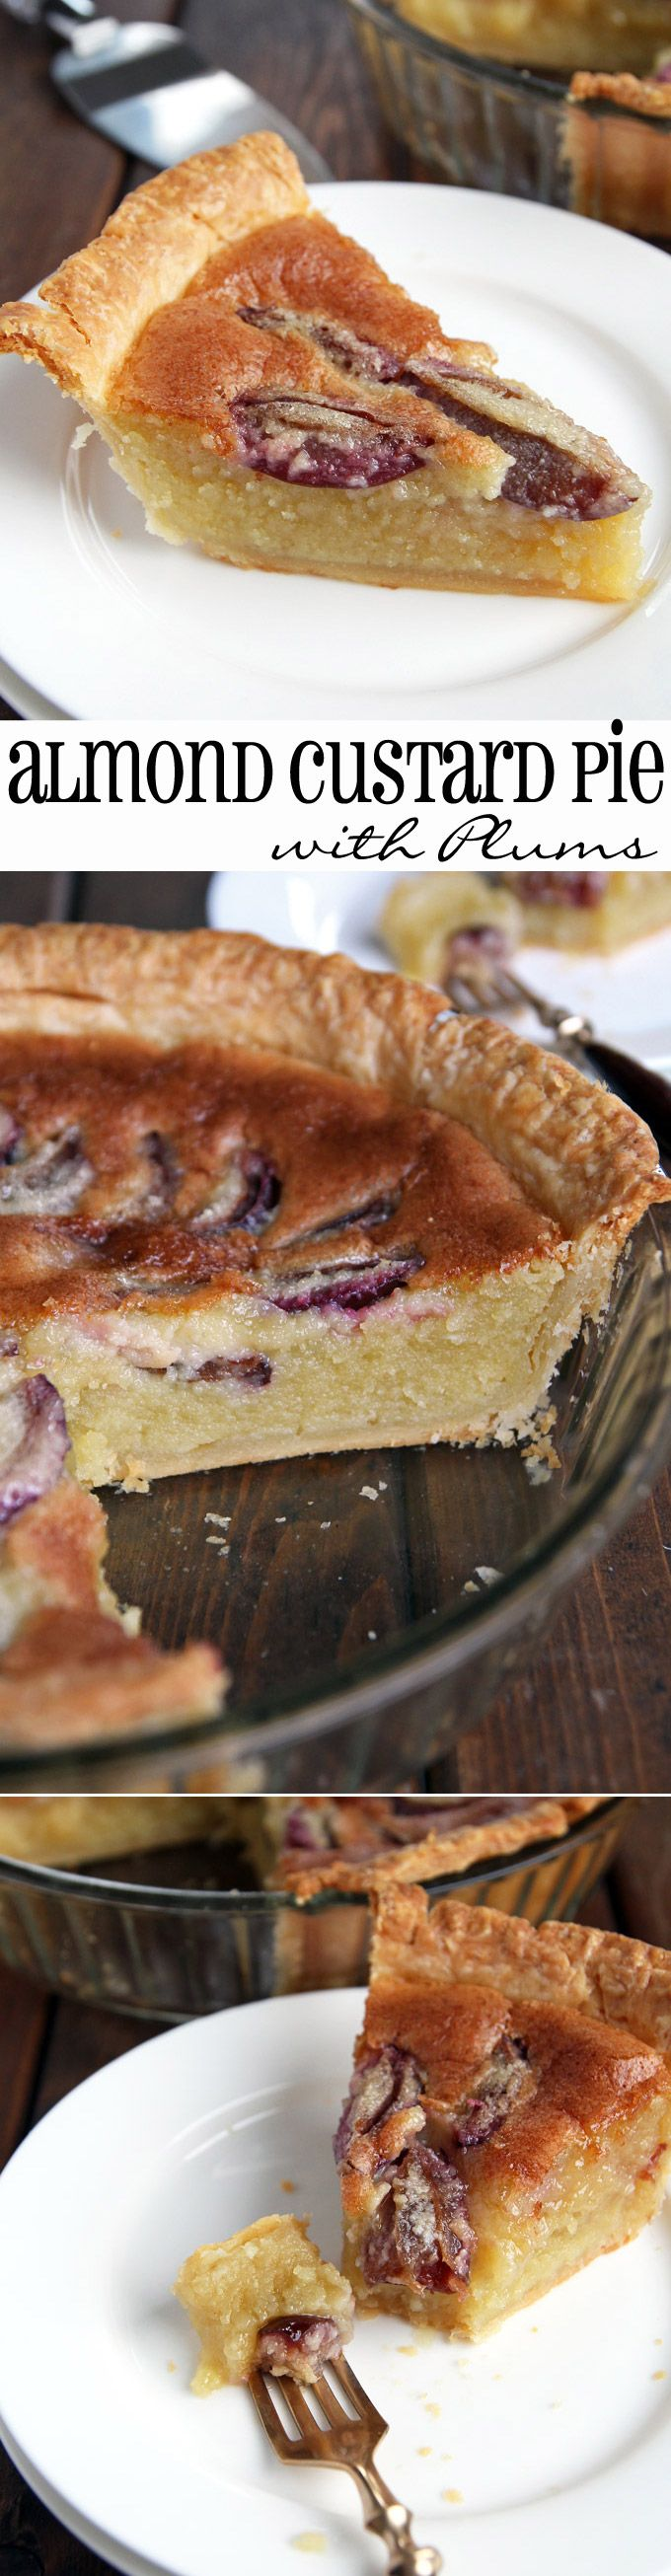 Heavenly Almond Custard Pie with Plums! Also great with different or no fruit.